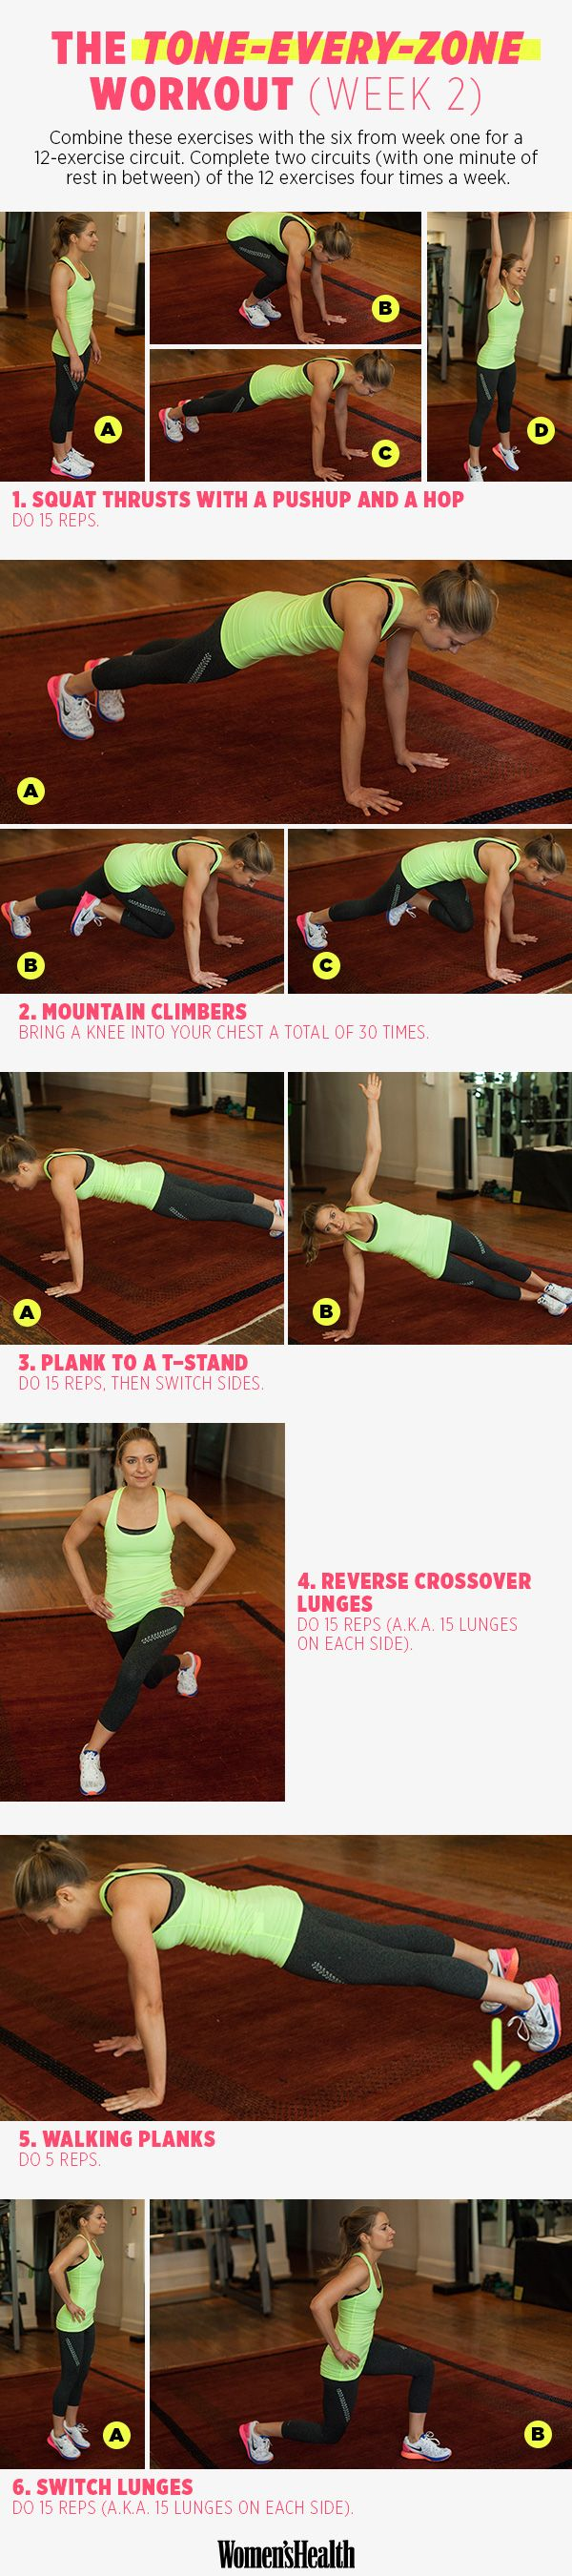 6 Moves for Total-Body Toning WEEK 2 - Our four-week training plan with celeb trainer David Kirsch kicks off today! Meet the first week of strength-training exercises here.   Women's Health Magazine #fitness #workout #health